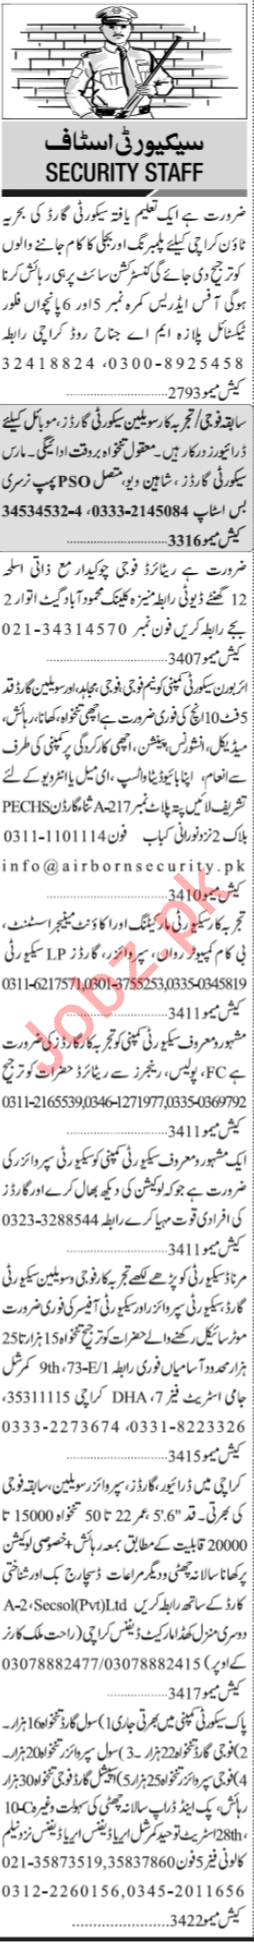 Jang Sunday Classified Ads 14th April 2019 Security Staff